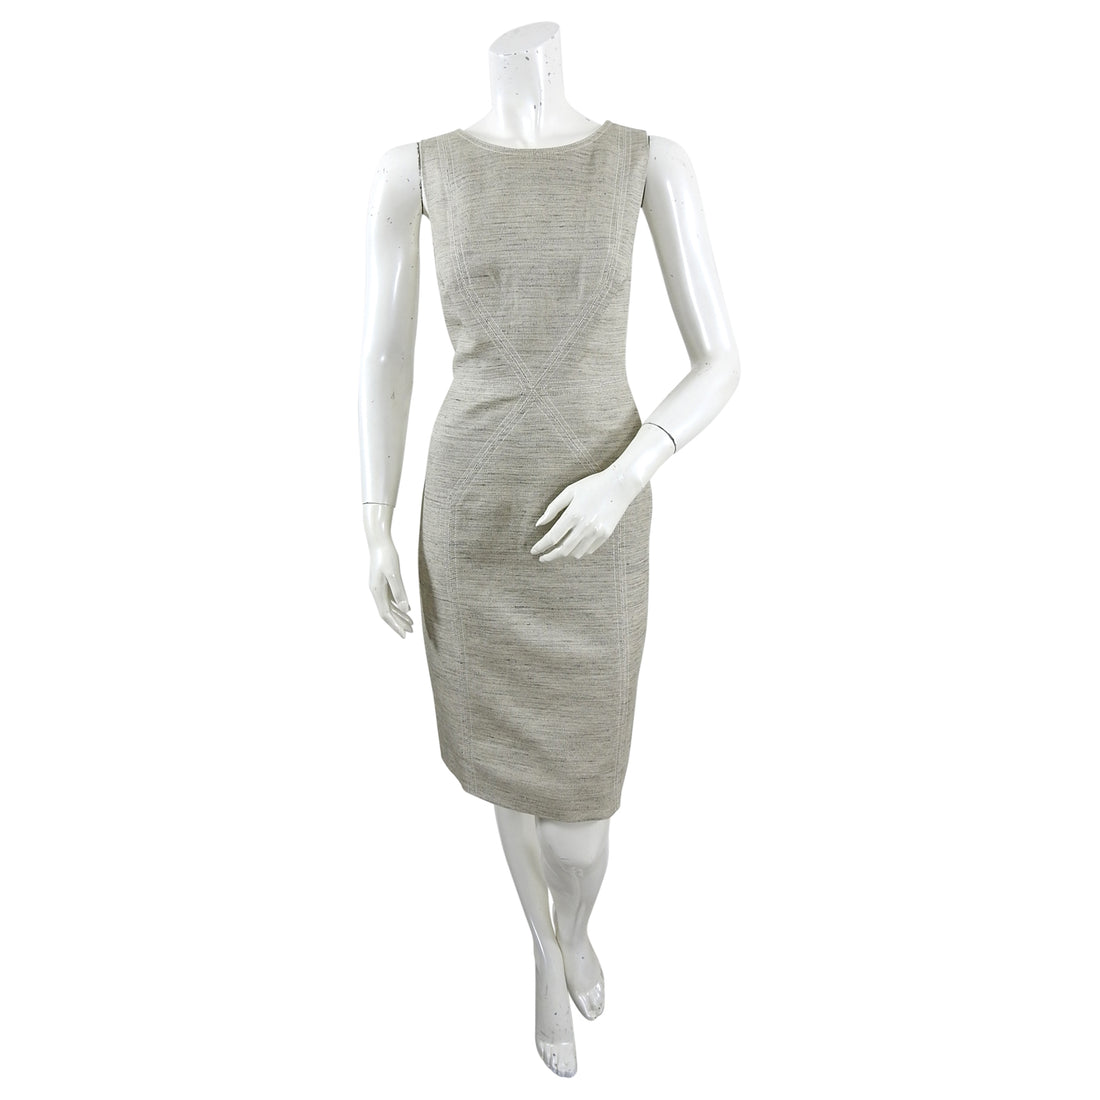 Oscar de la Renta Sleeveless Linen Wiggle Dress - 6